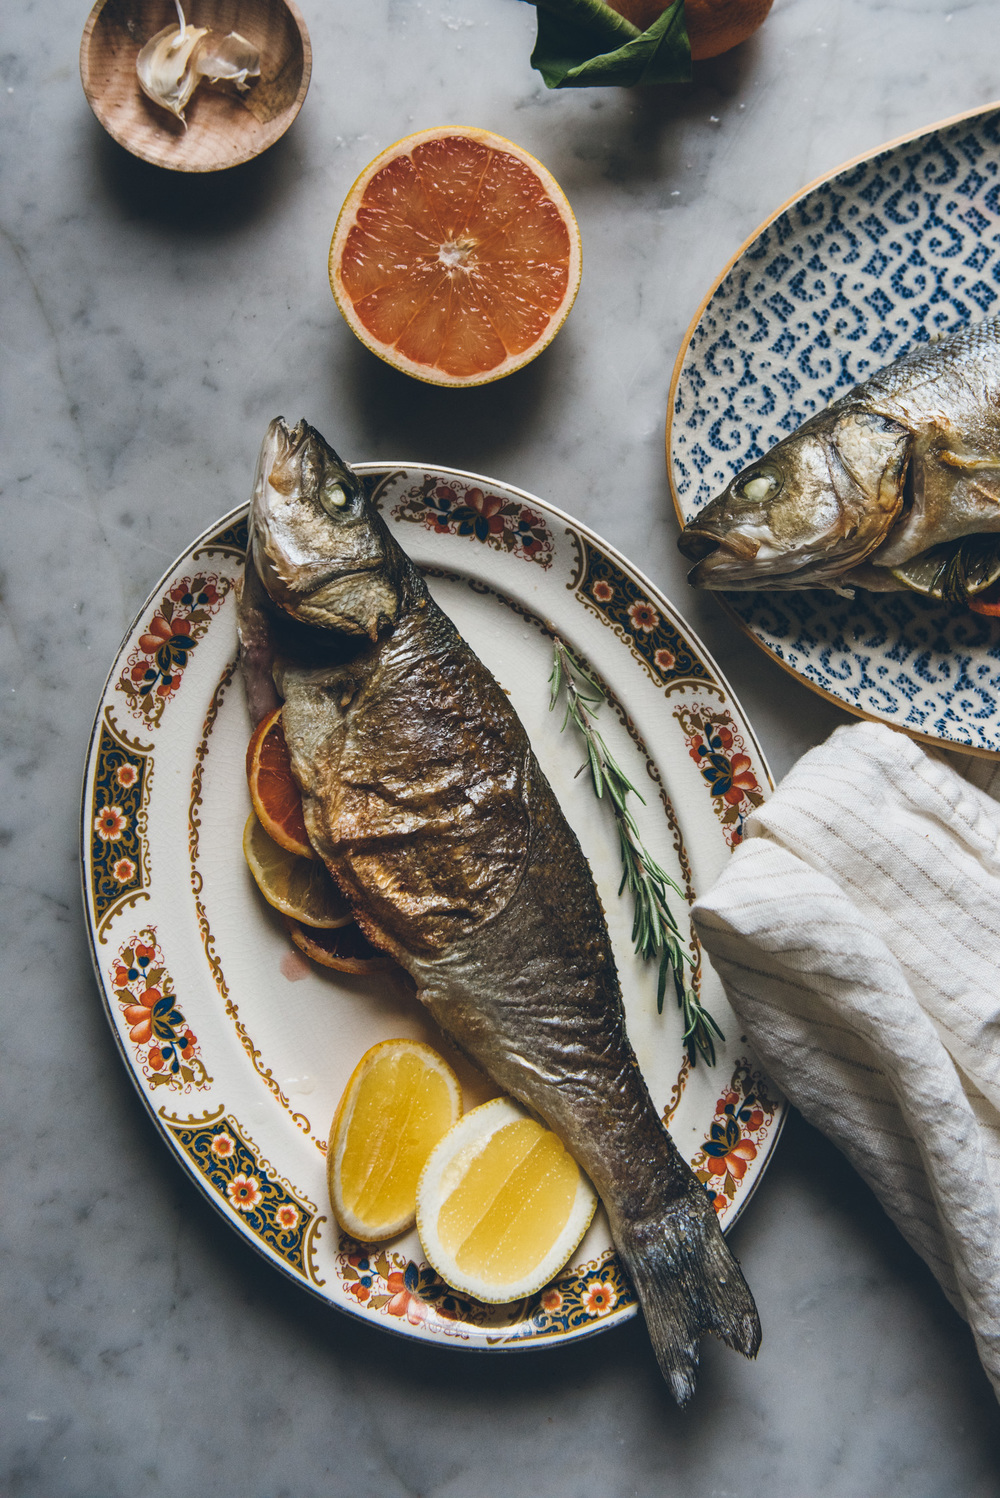 Citrus Stuffed Whole Roasted Fish | O&O Eats